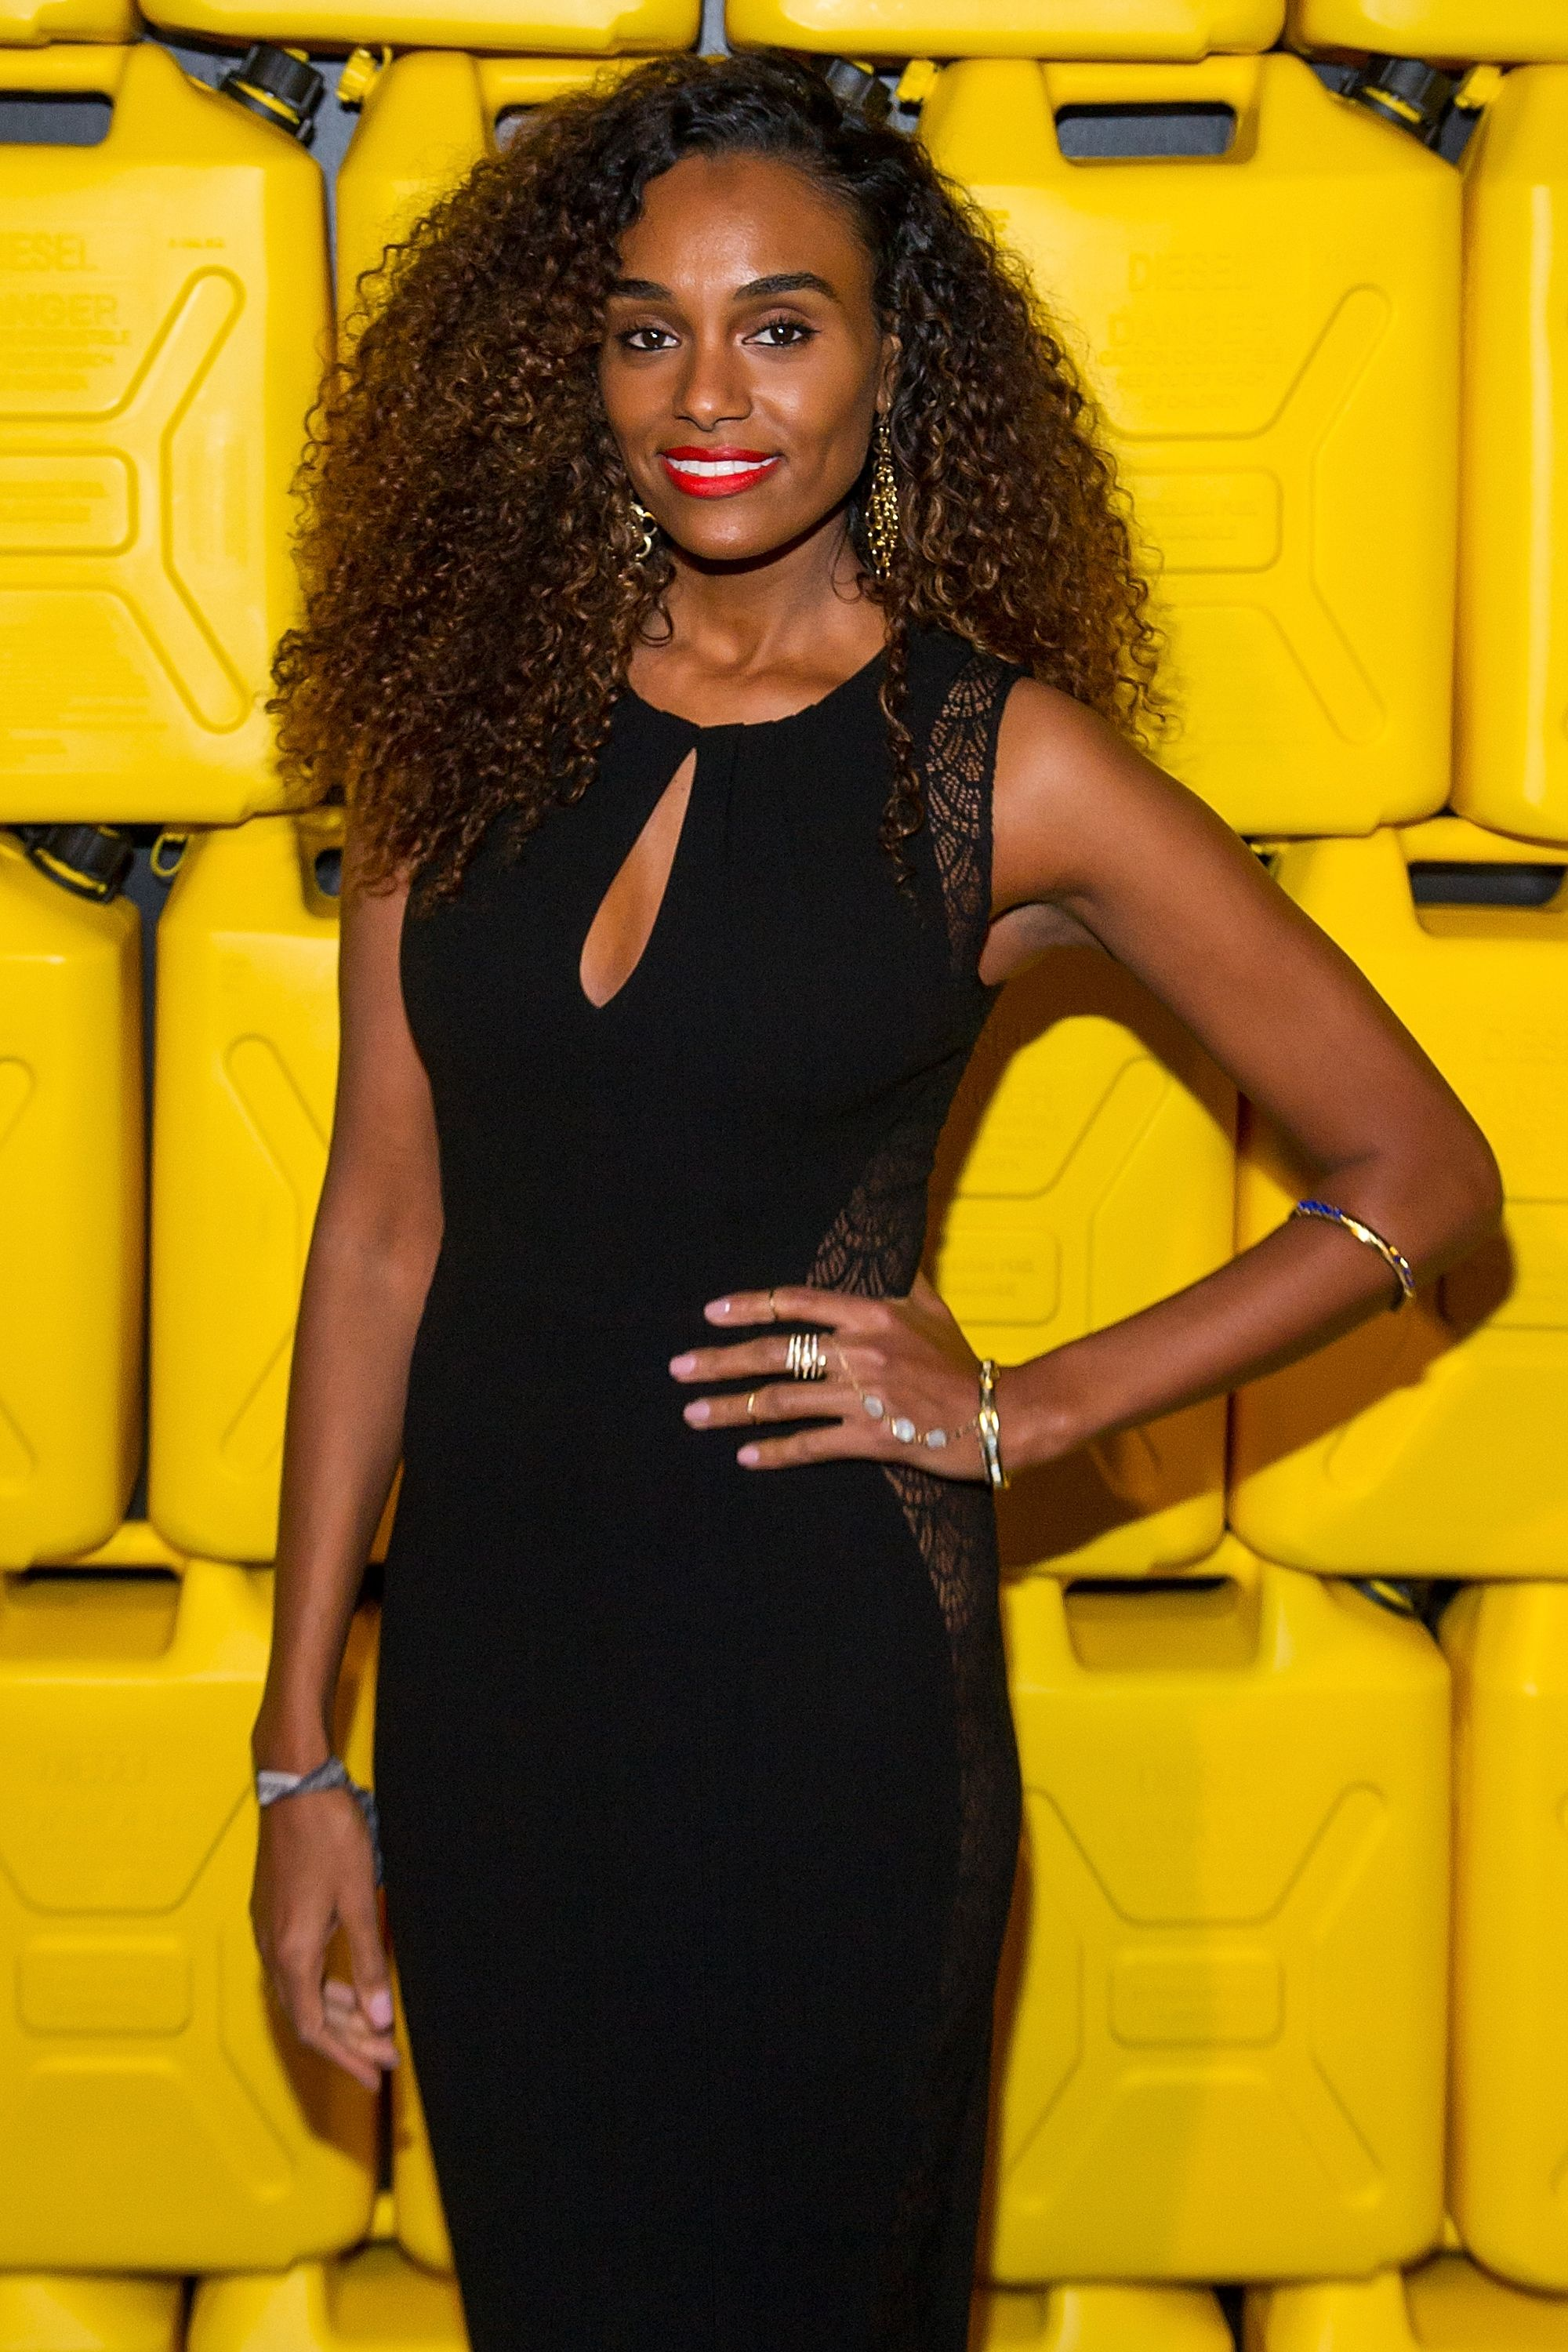 Gelila Bekele at the 8th Annual Charity Ball Gala on December 16, 2013 in New York. | Photo: Getty Images